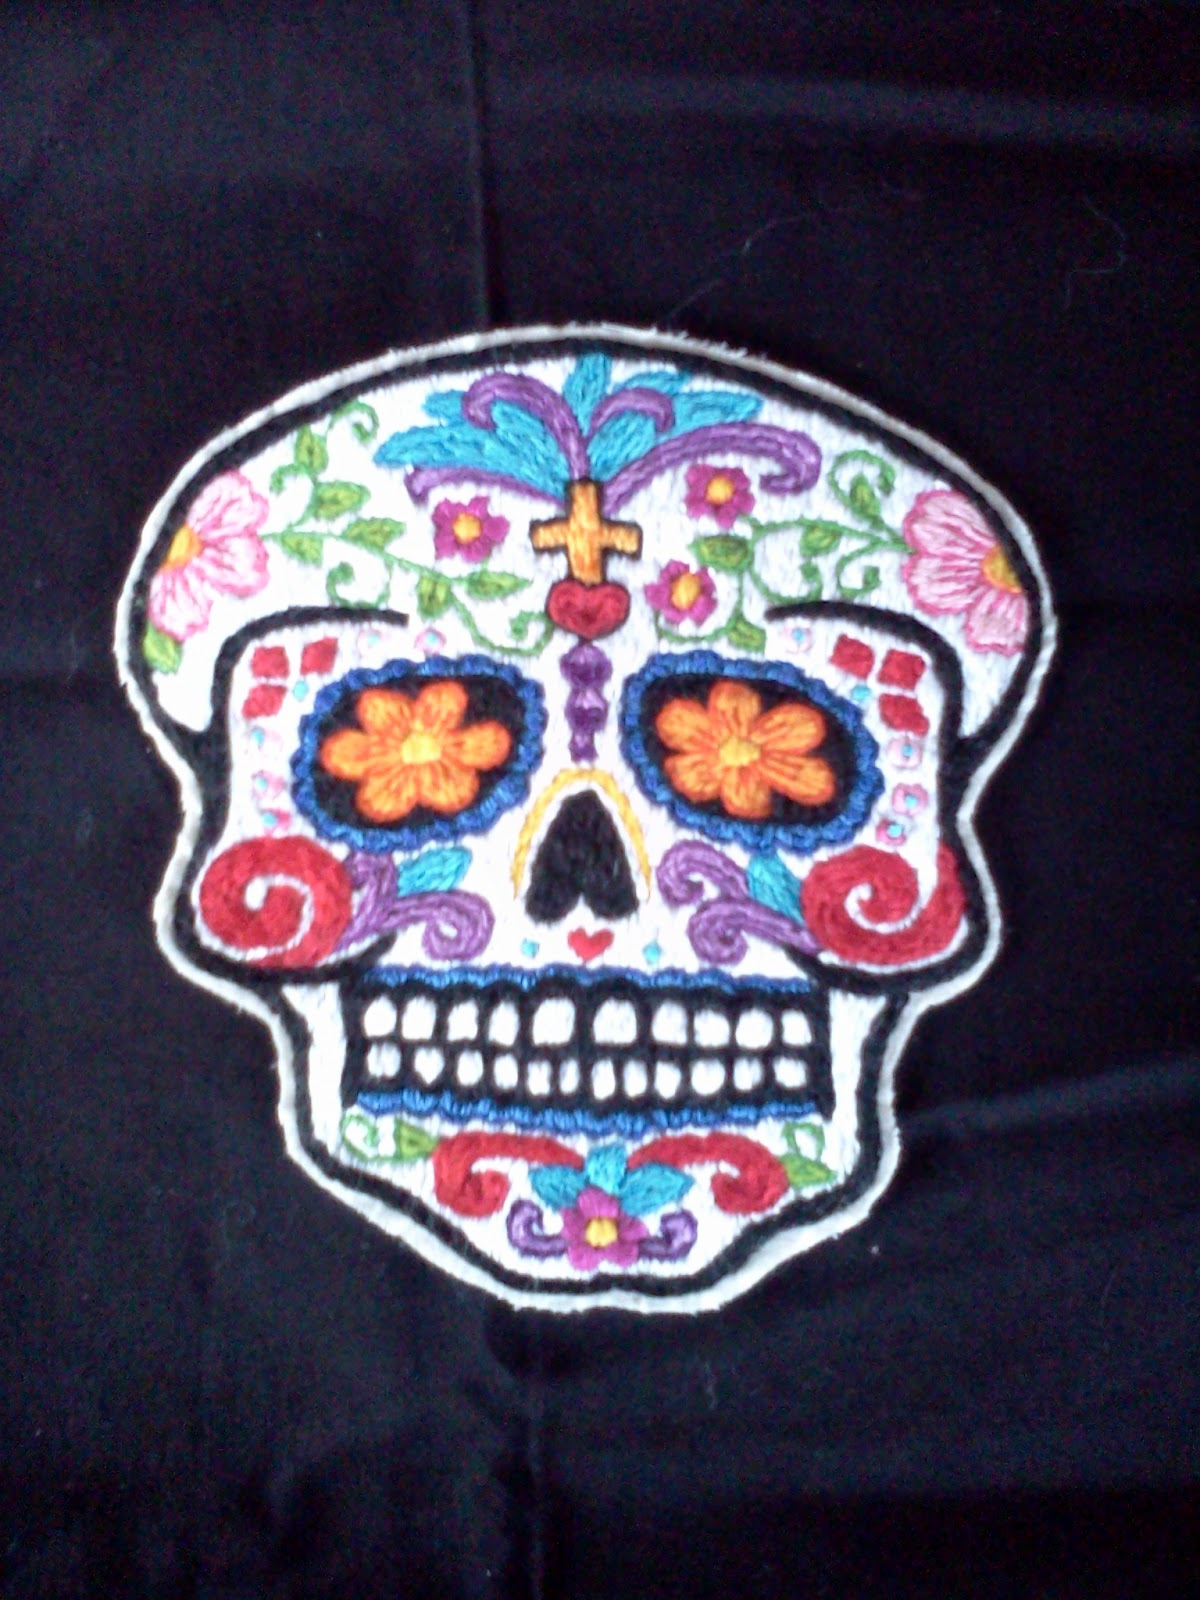 Humboldt Cherry: Hand Embroidered Sugar Skull Patches